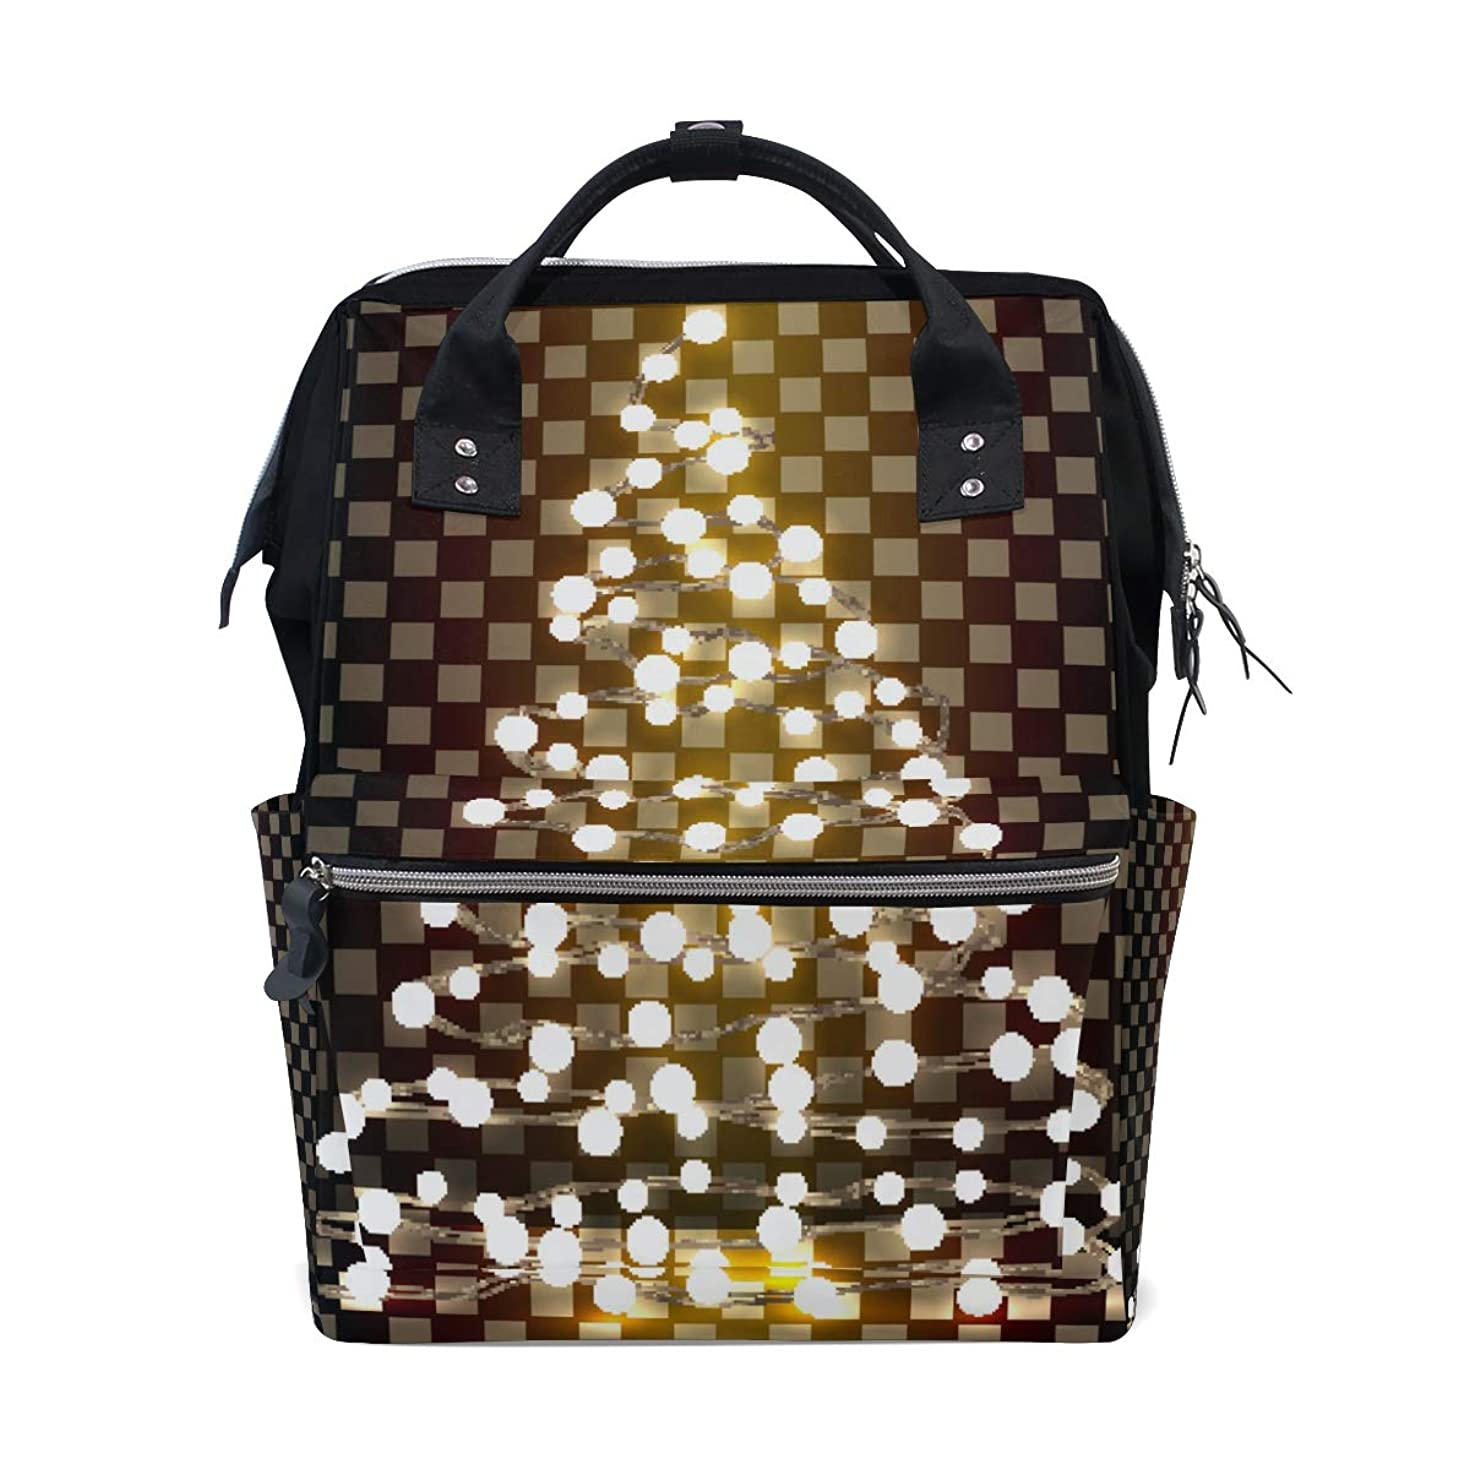 School Backpack Lamp Luminous Grid Bag Student Stylish Unisex Laptop Book Bag Rucksack for Teen Boys and Girls